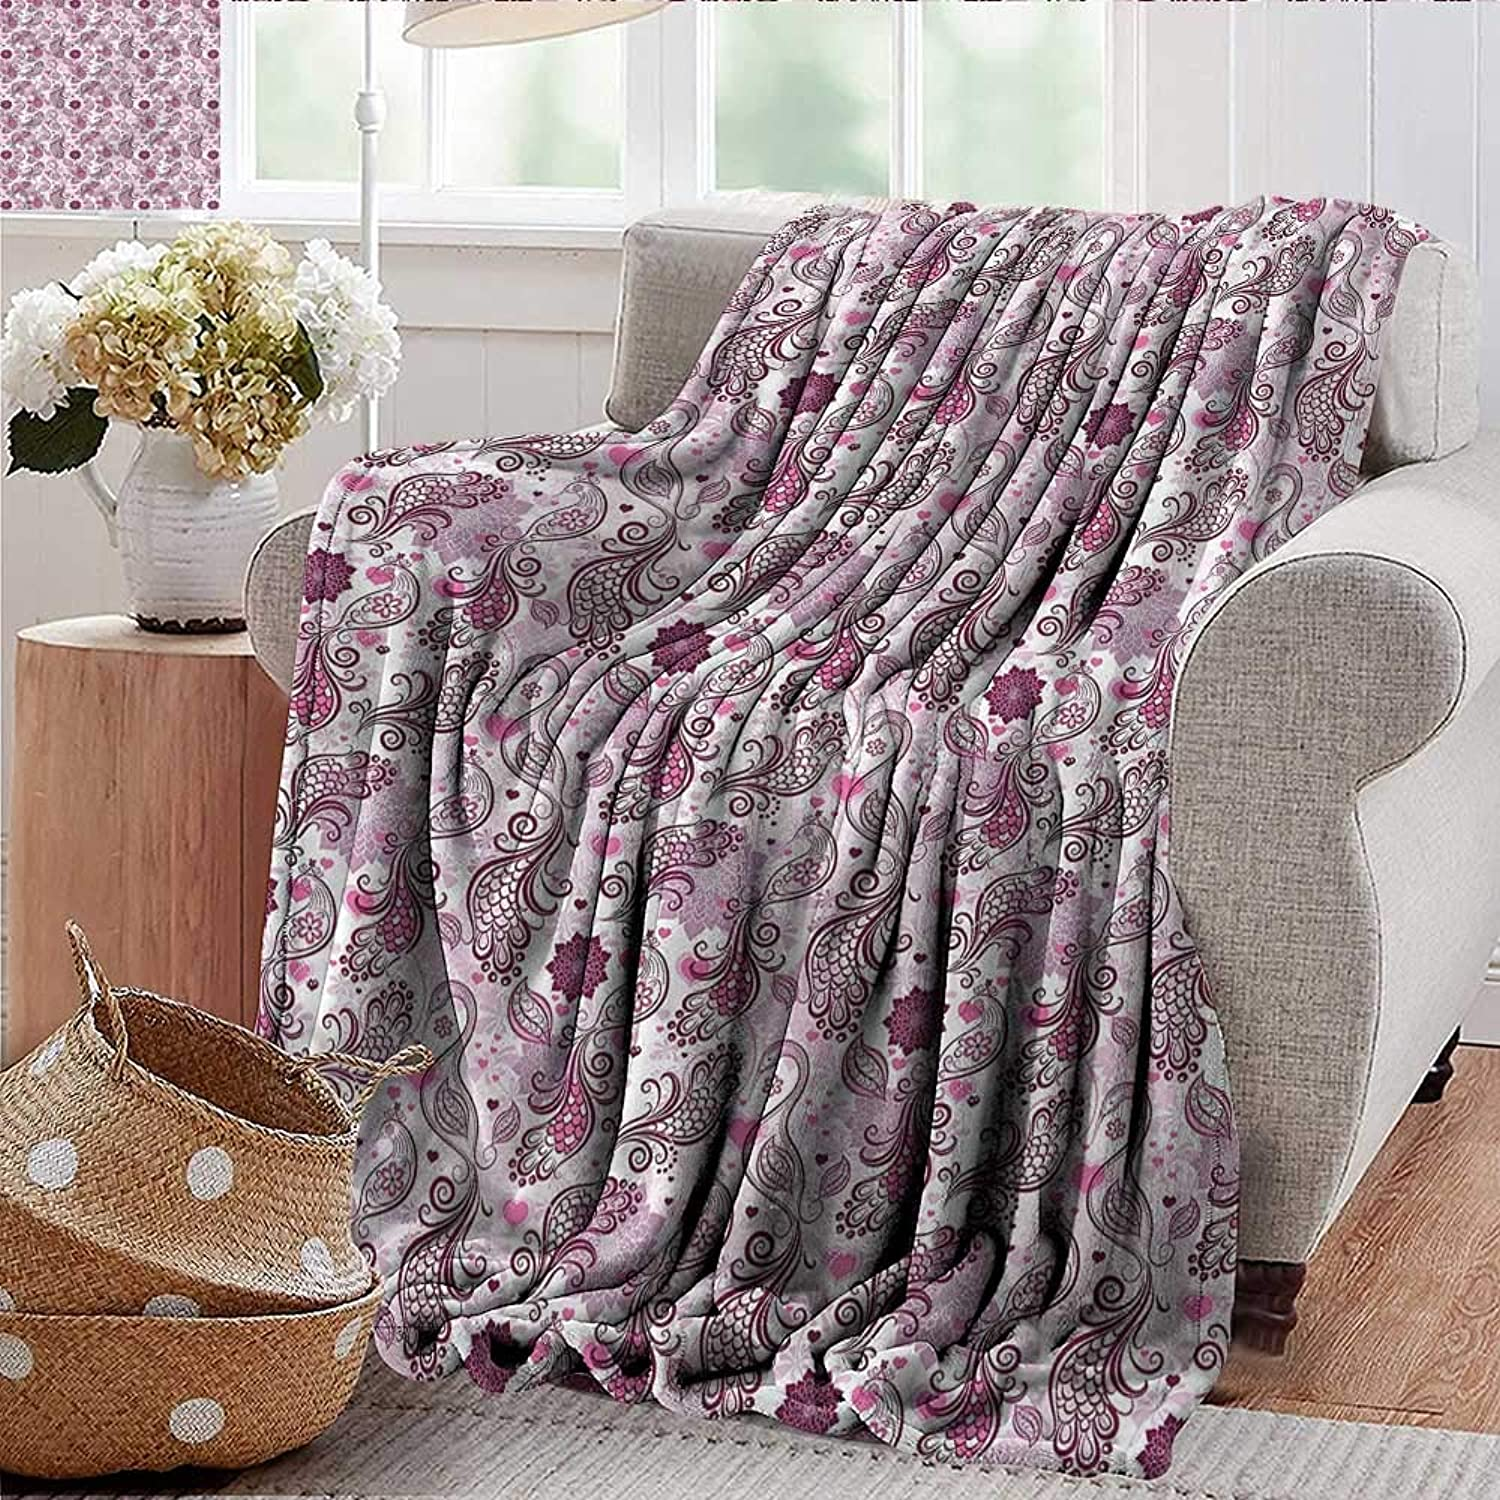 Xaviera Doherty Weighted Blanket for Kids Purple,Romantic Birds Flowers Soft Summer Cooling Lightweight Bed Blanket 50 x60